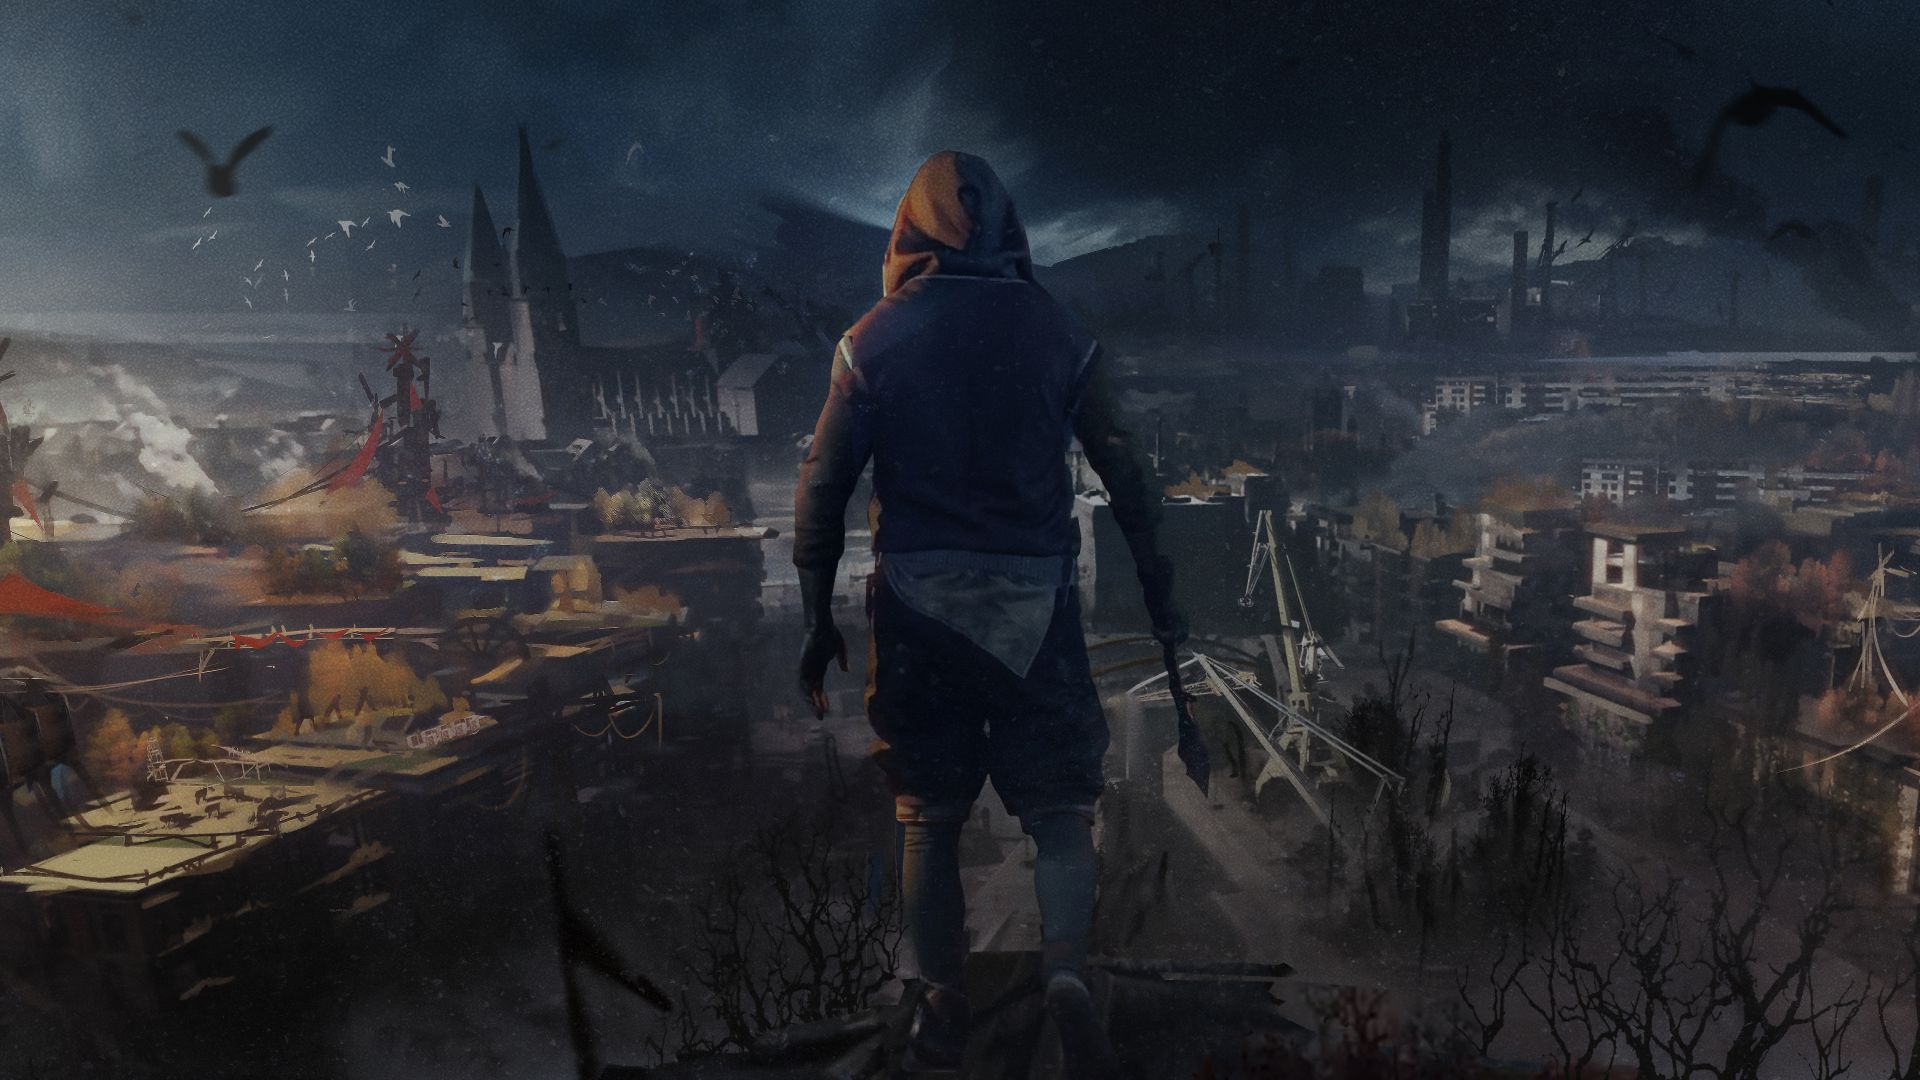 Dying Light 2, E3 2019, poster, 8K (horizontal)